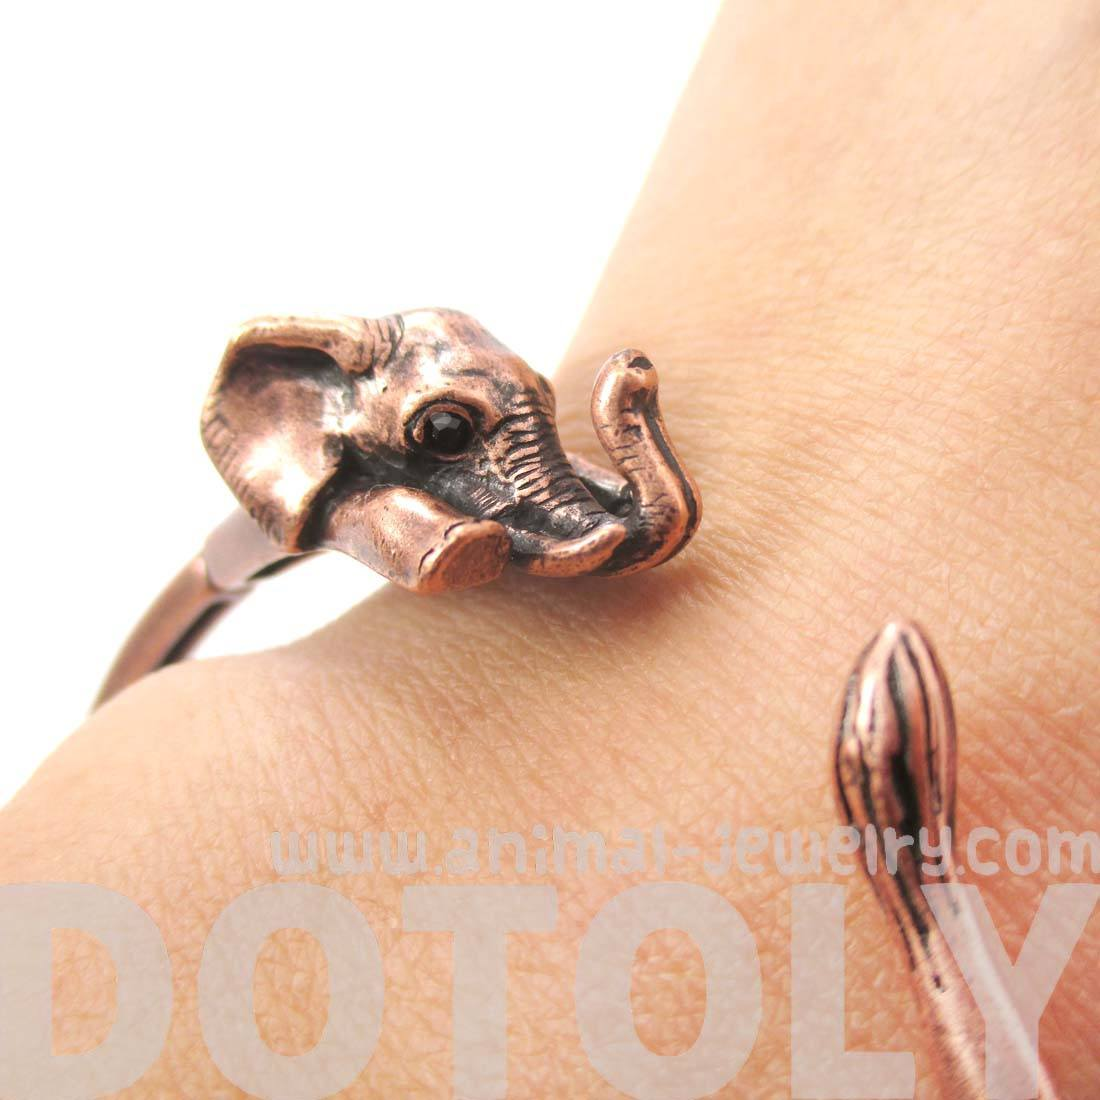 3D Elephant Wrapped Around Your Wrist Shaped Bangle Bracelet in Copper